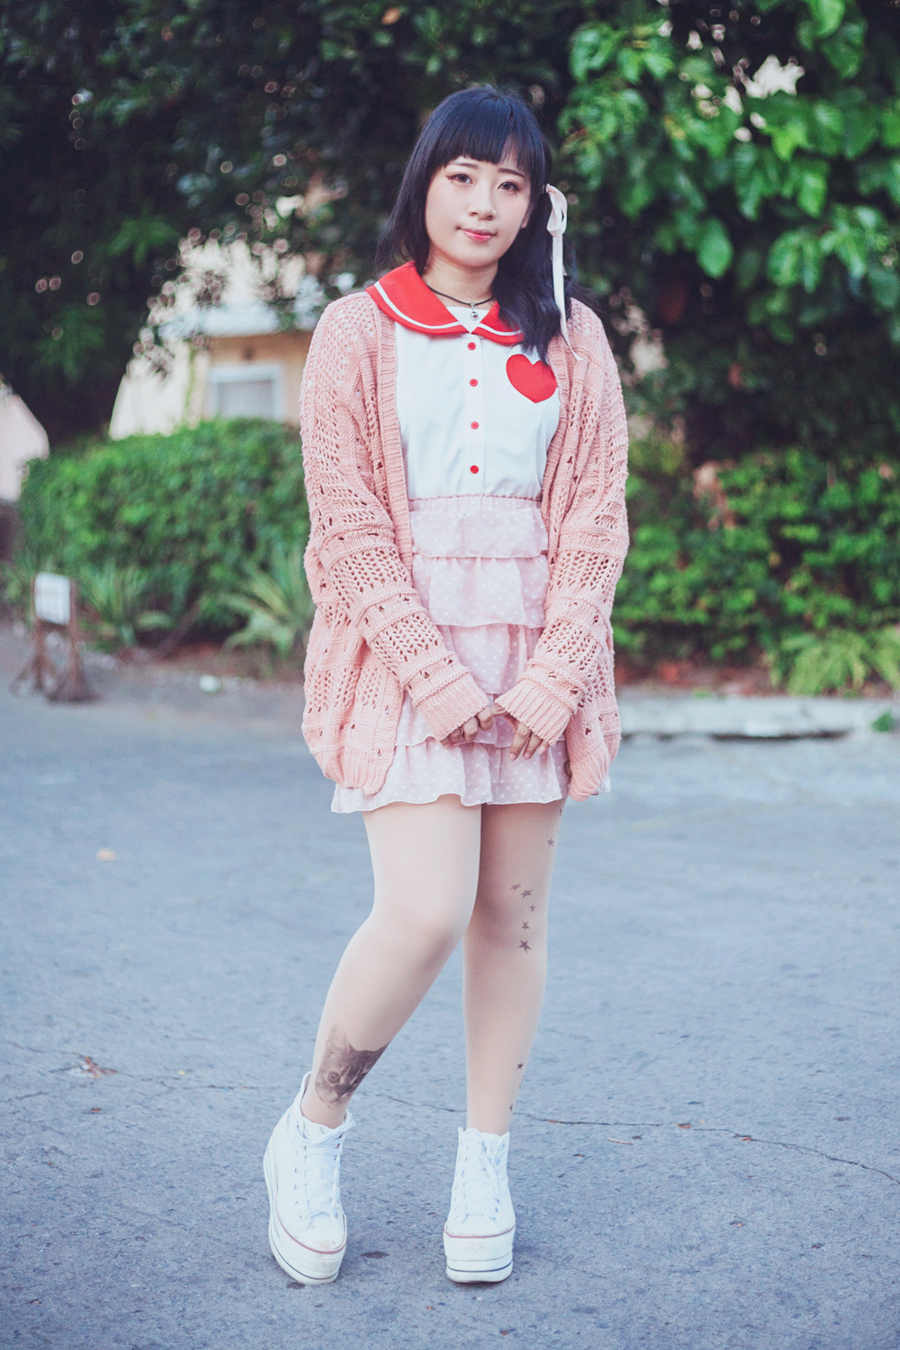 the Kawaii Girl uniform | chainyan.co